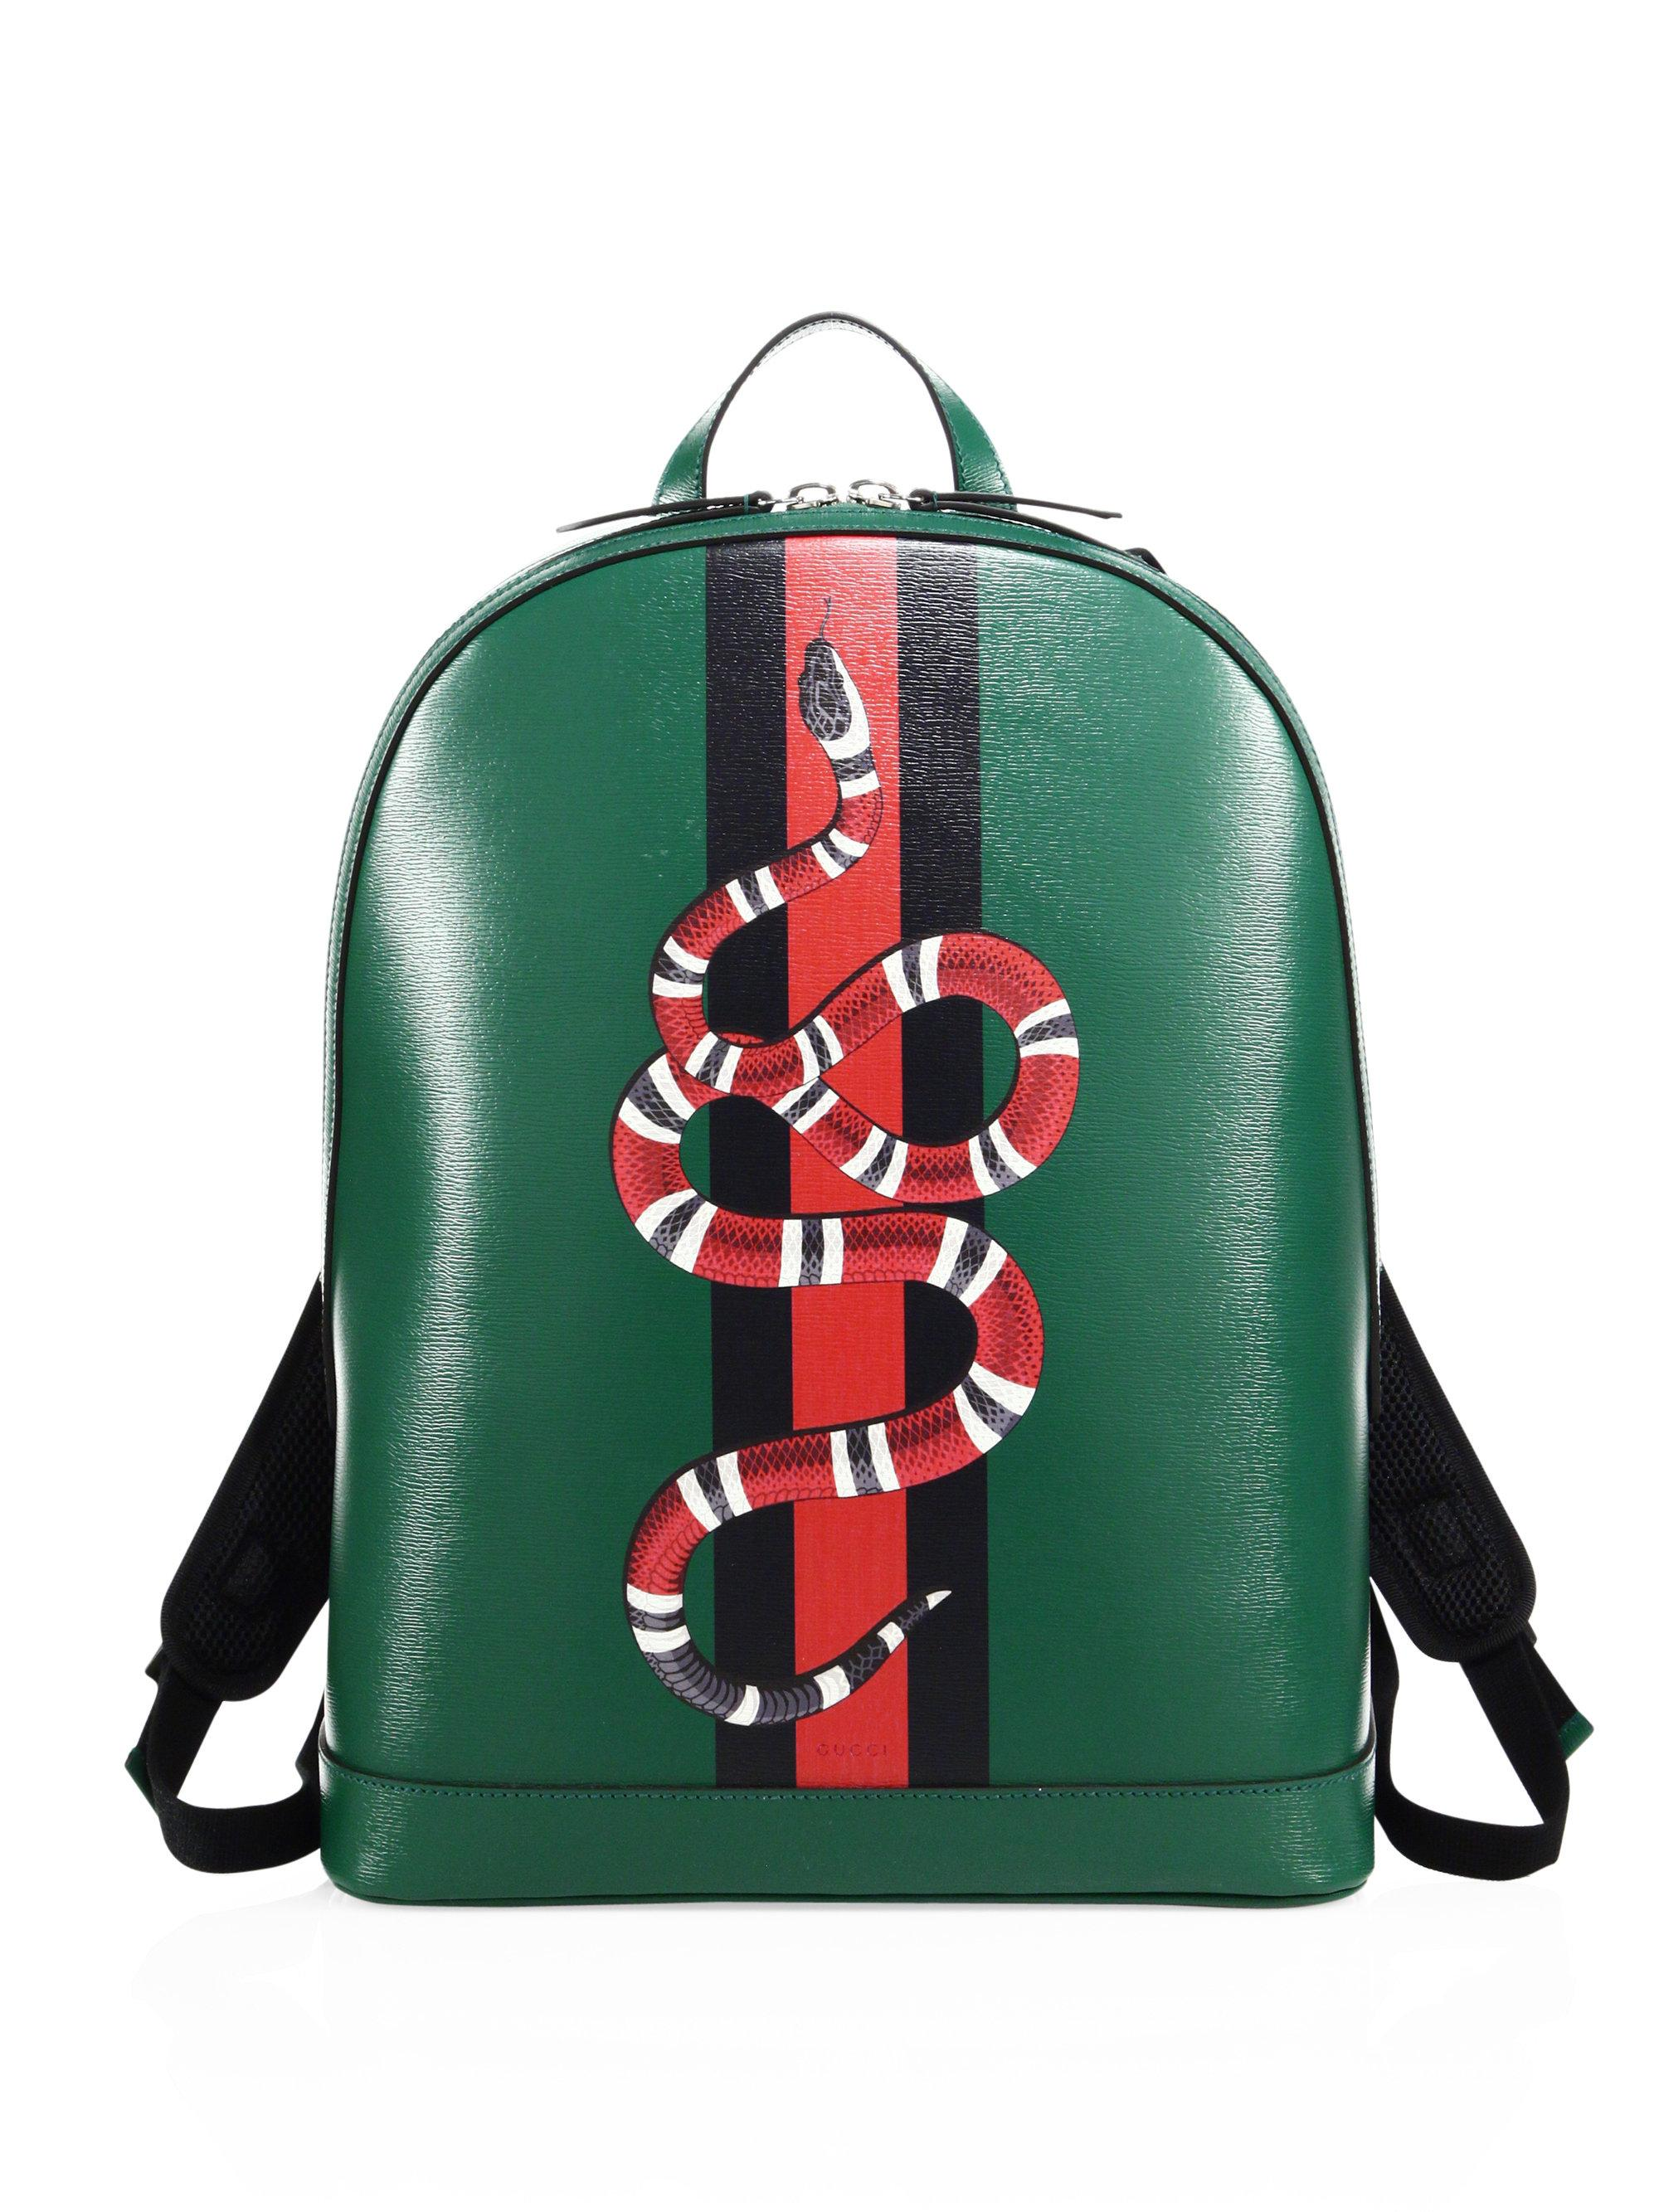 Gucci Snake Printed Leather Backpack in Green for Men - Lyst bad8accb0d